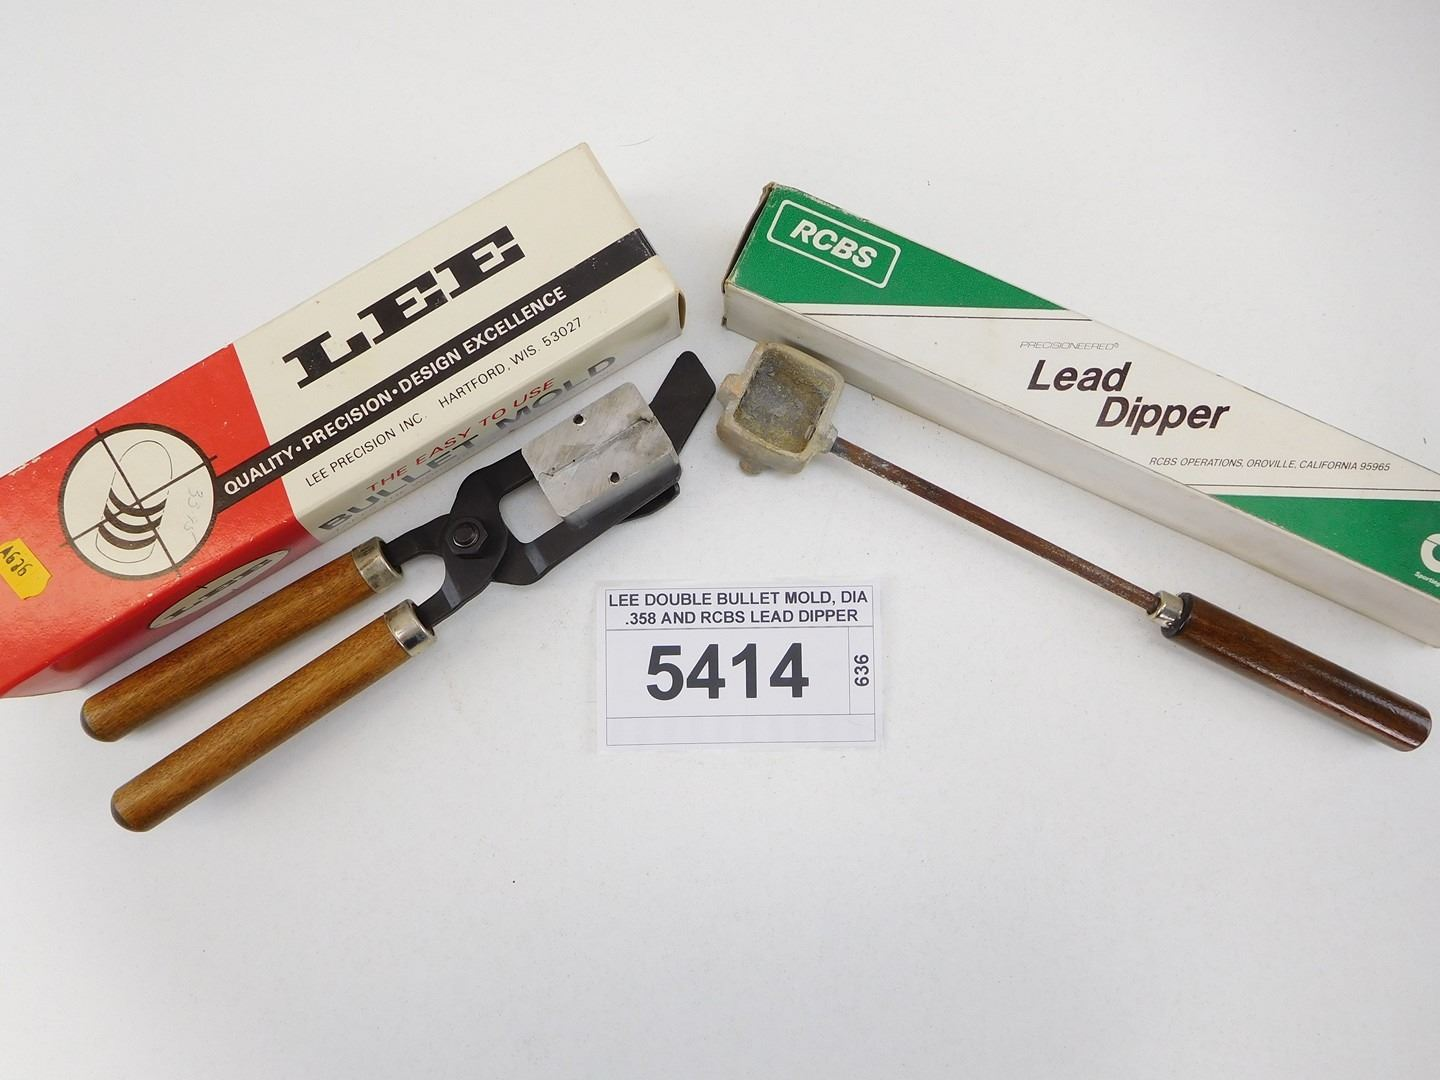 LEE DOUBLE BULLET MOLD, DIA  358 AND RCBS LEAD DIPPER